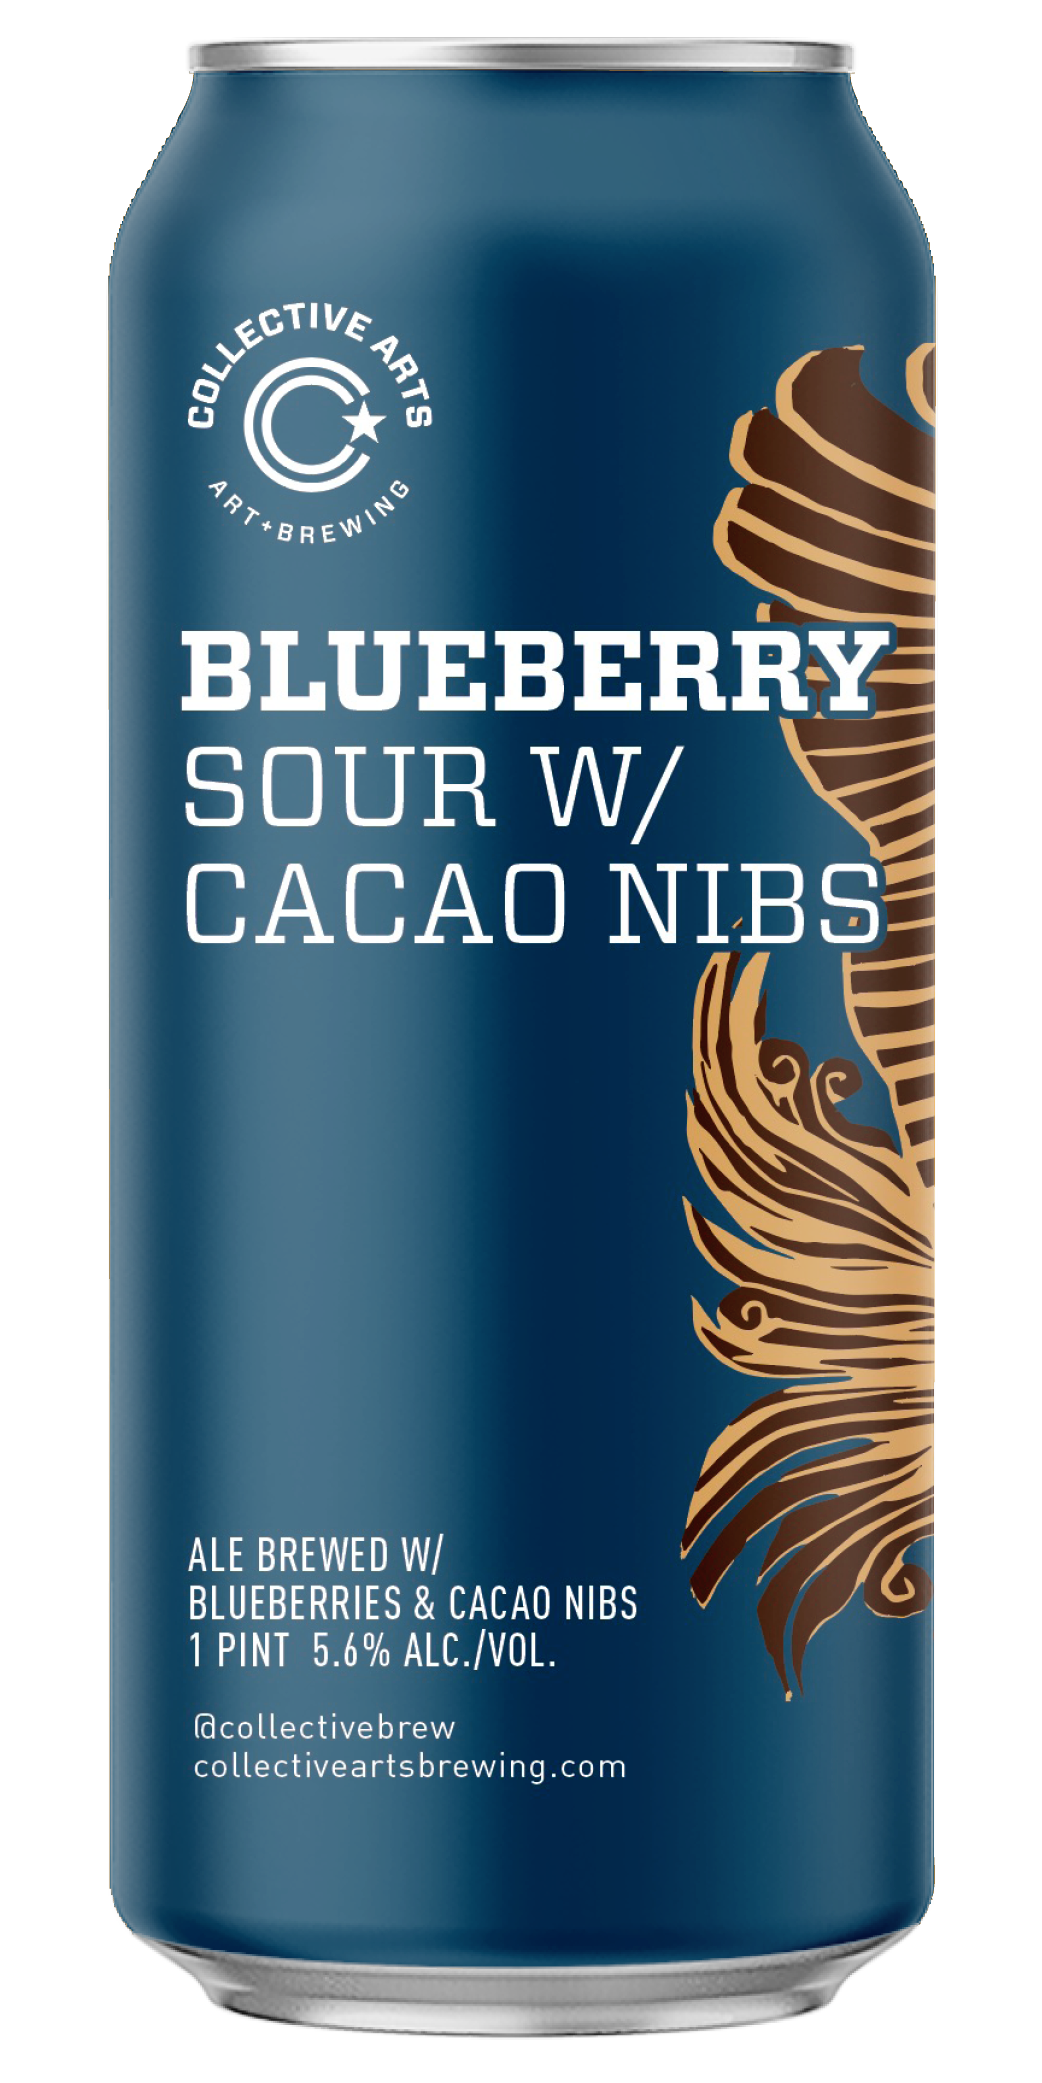 Blueberry Chocolate Sour - Collective Arts - Blueberry Chocolate Sour, 5.6%, 473ml Can